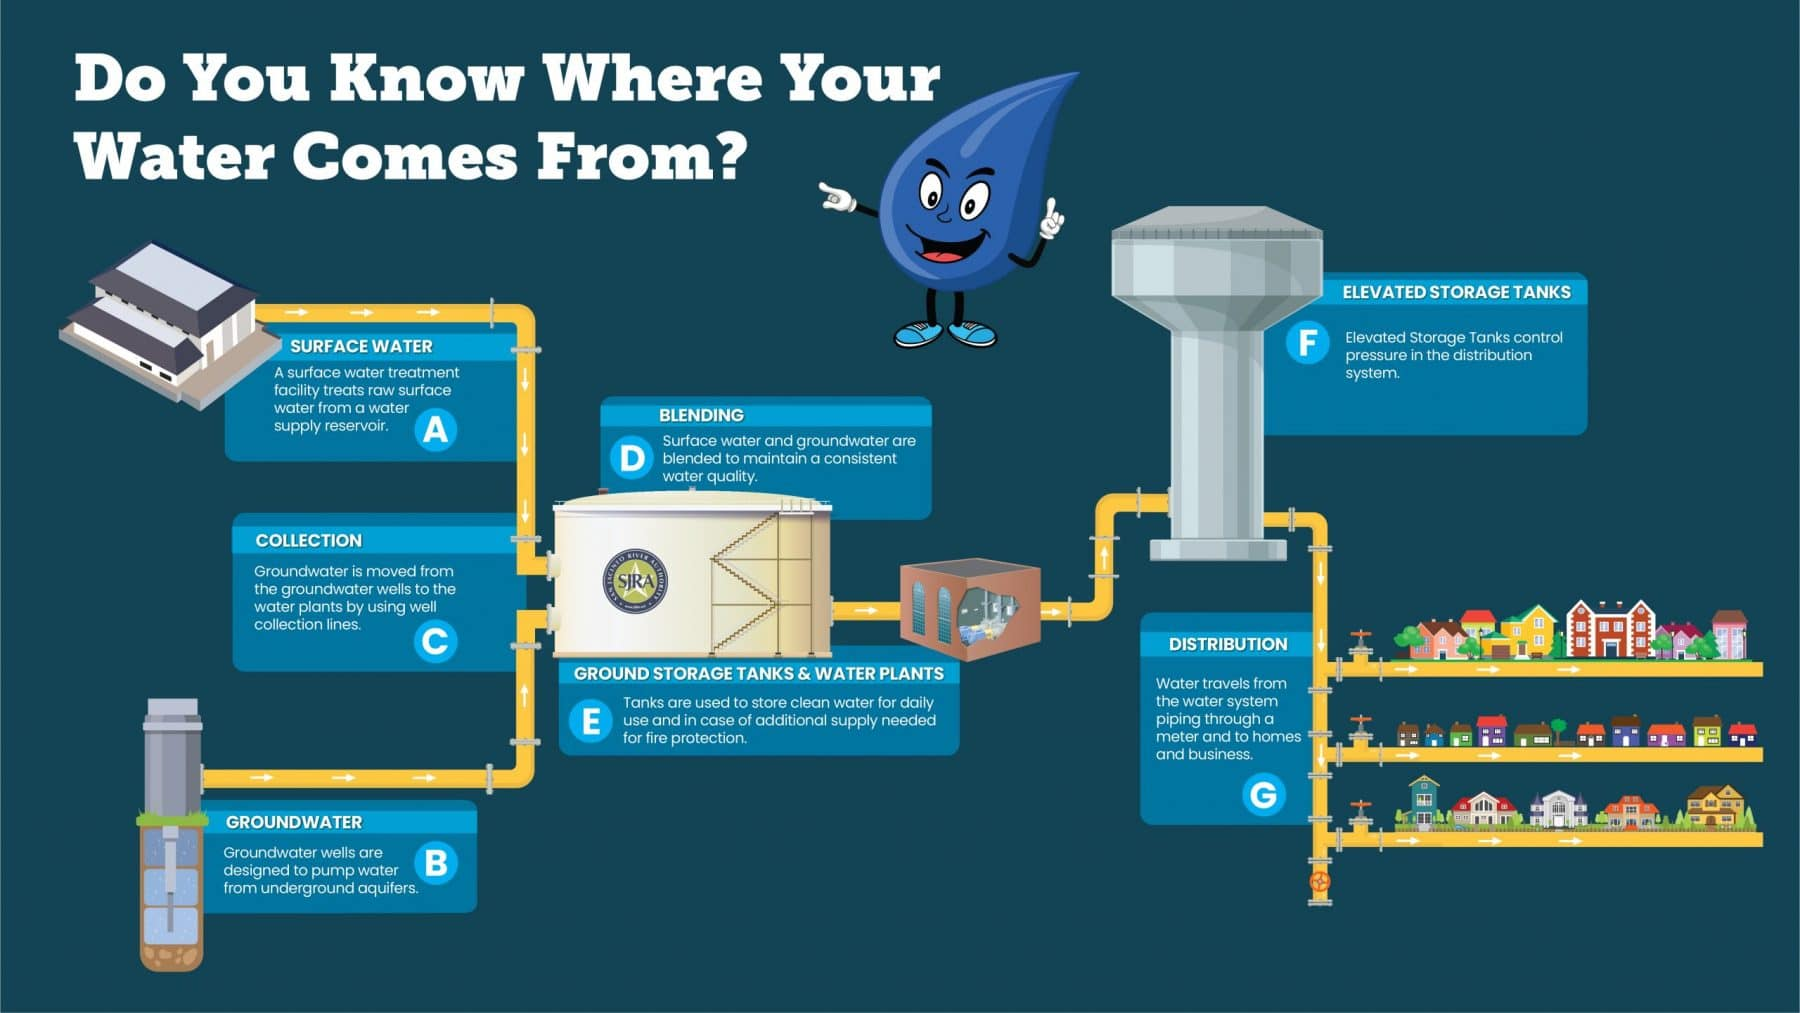 Do you know where you water comes from